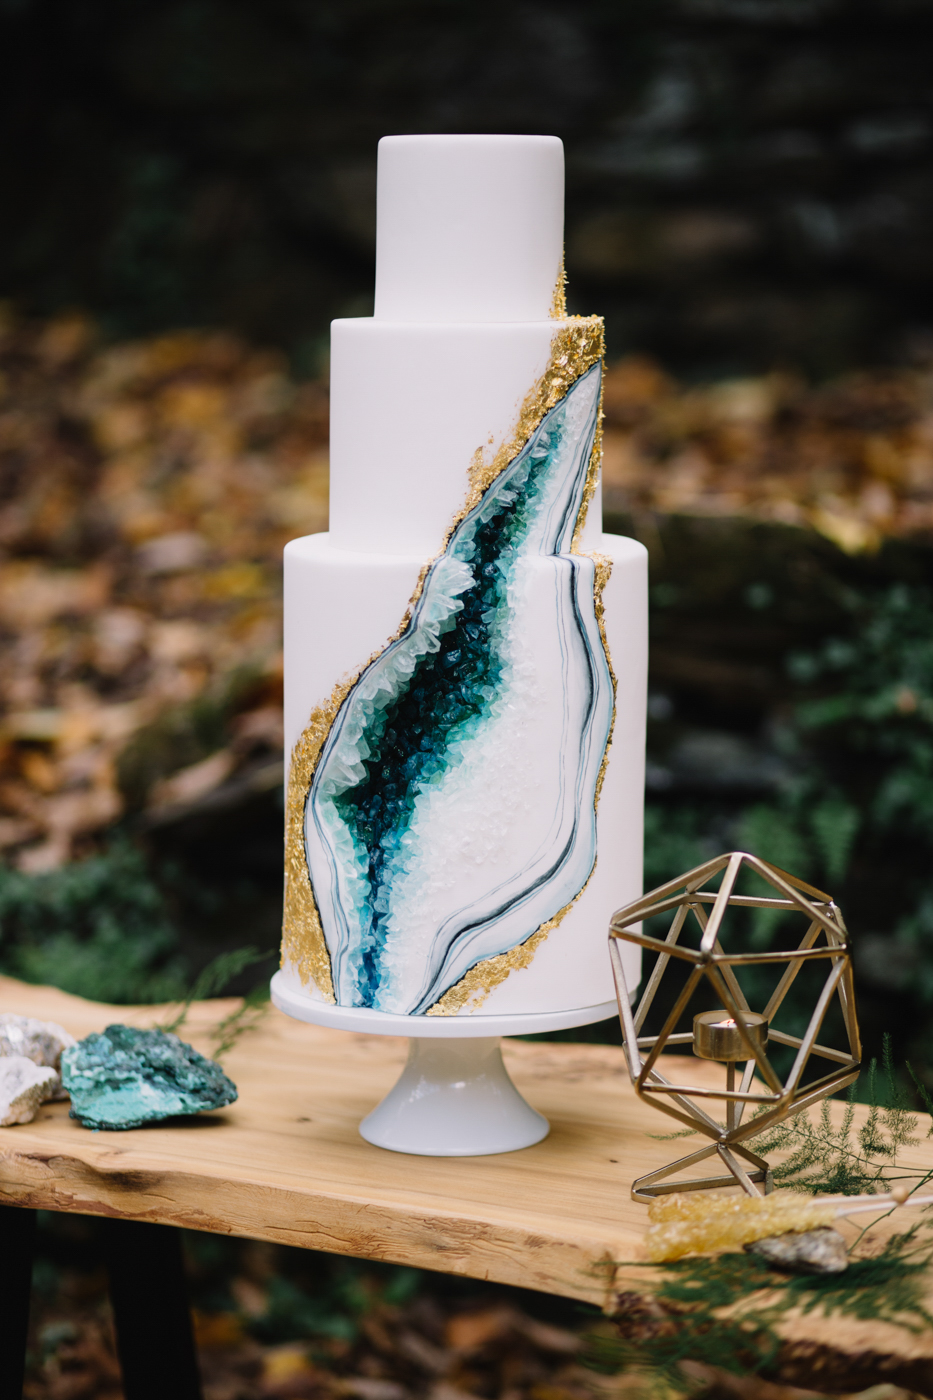 philadelphia-wedding-photographer-valley-green-inn-boho-geode-whimsical-philly-waterfall-weddings-photography-fine-art-15.jpg